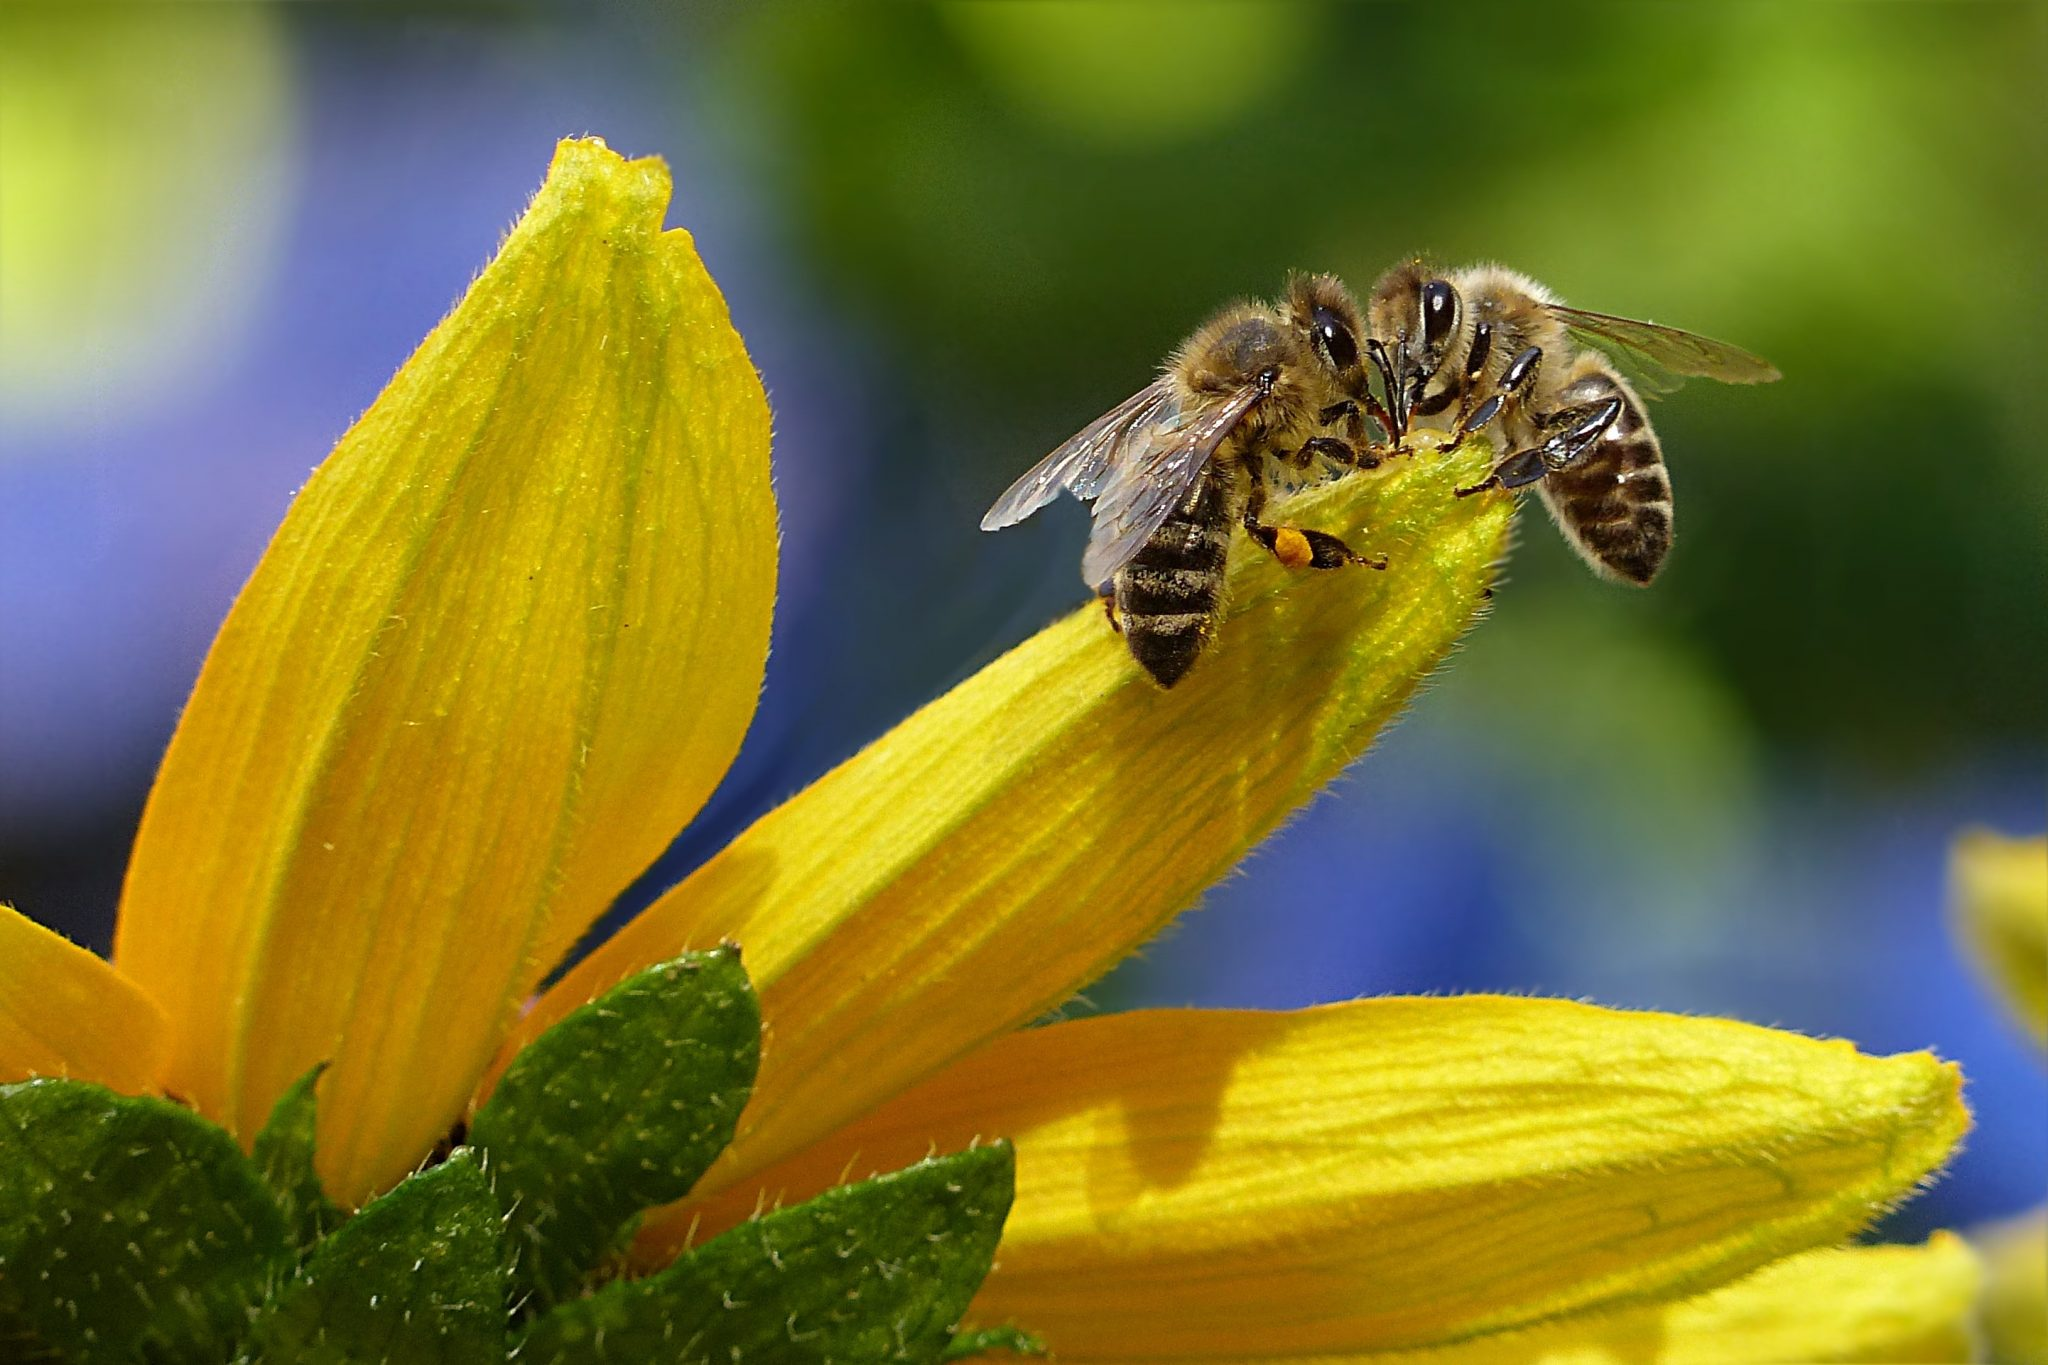 mushrooms help bees. enable images to view